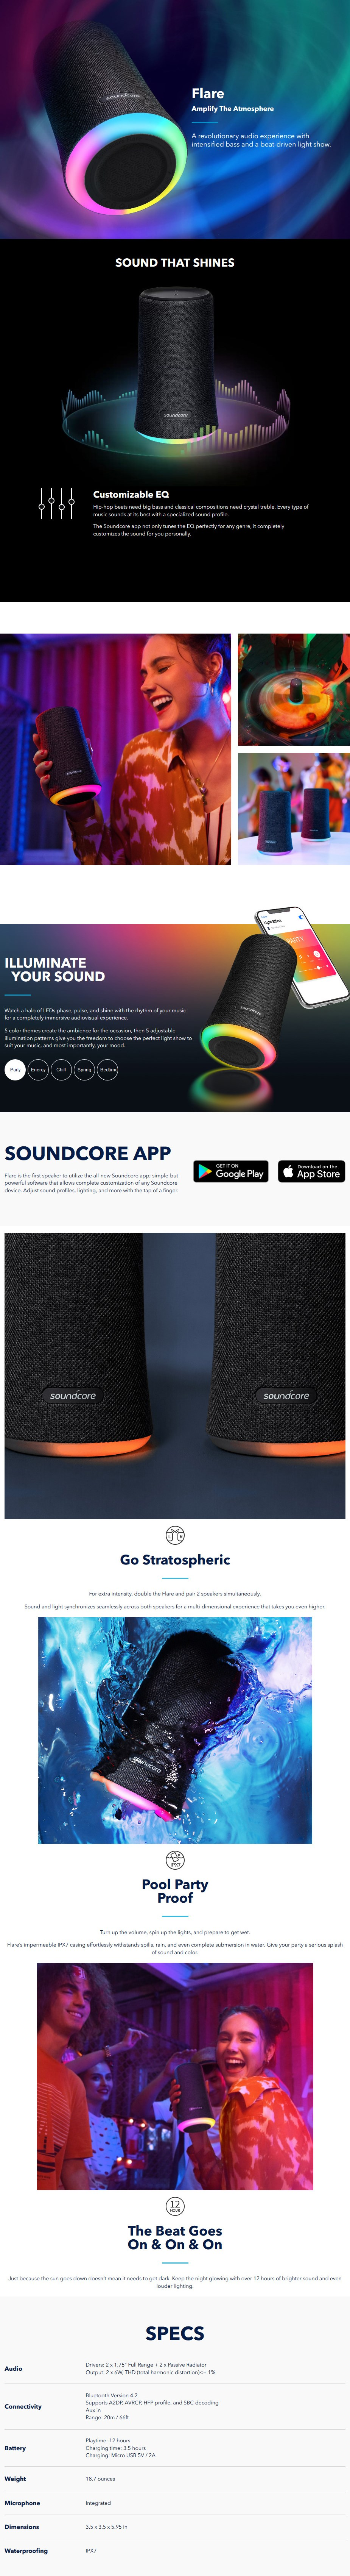 Anker SoundCore Flare Portable Bluetooth 360-Degree Speakers - Black - Desktop Overview 1